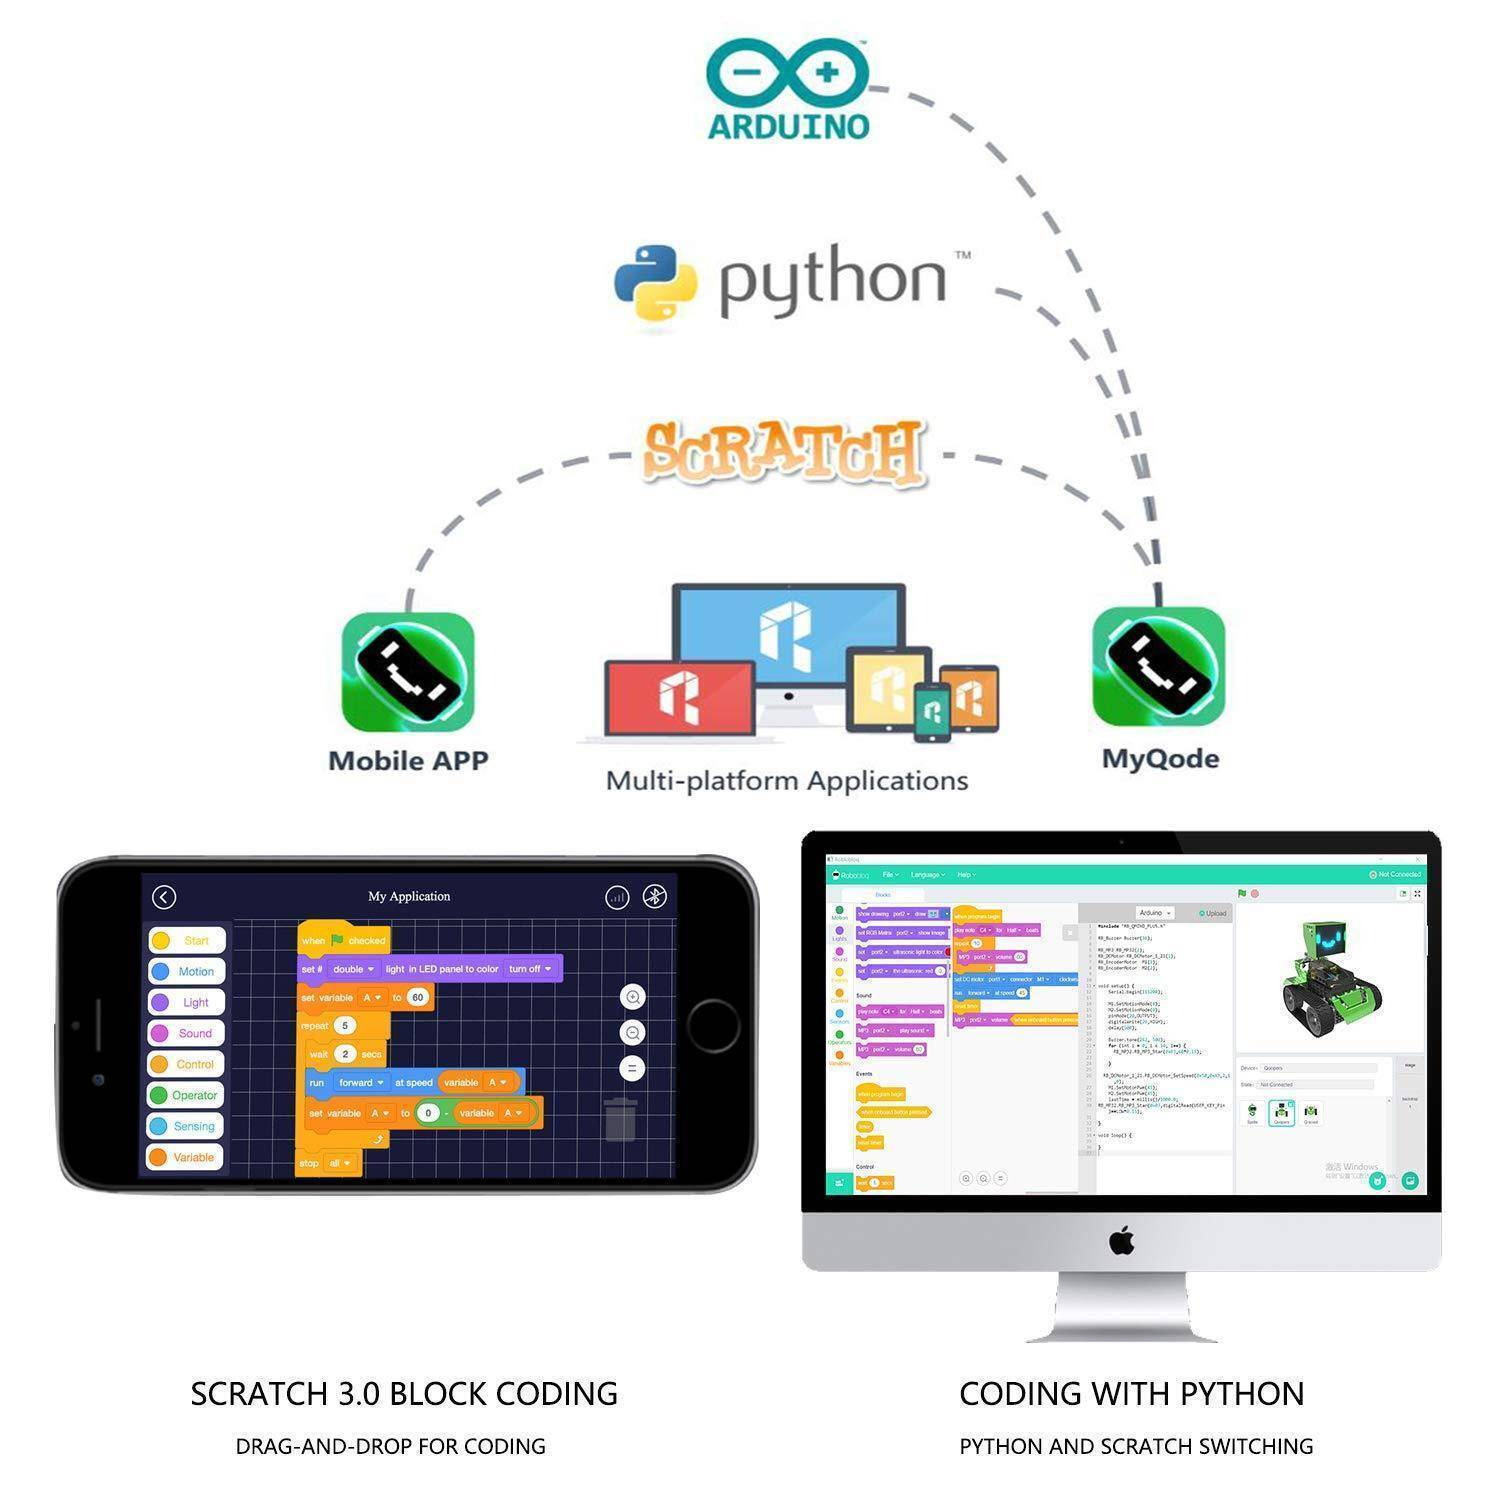 Qoopers 6 In 1 Python, Scratch And Arduino Programmable Robot By Robobloq